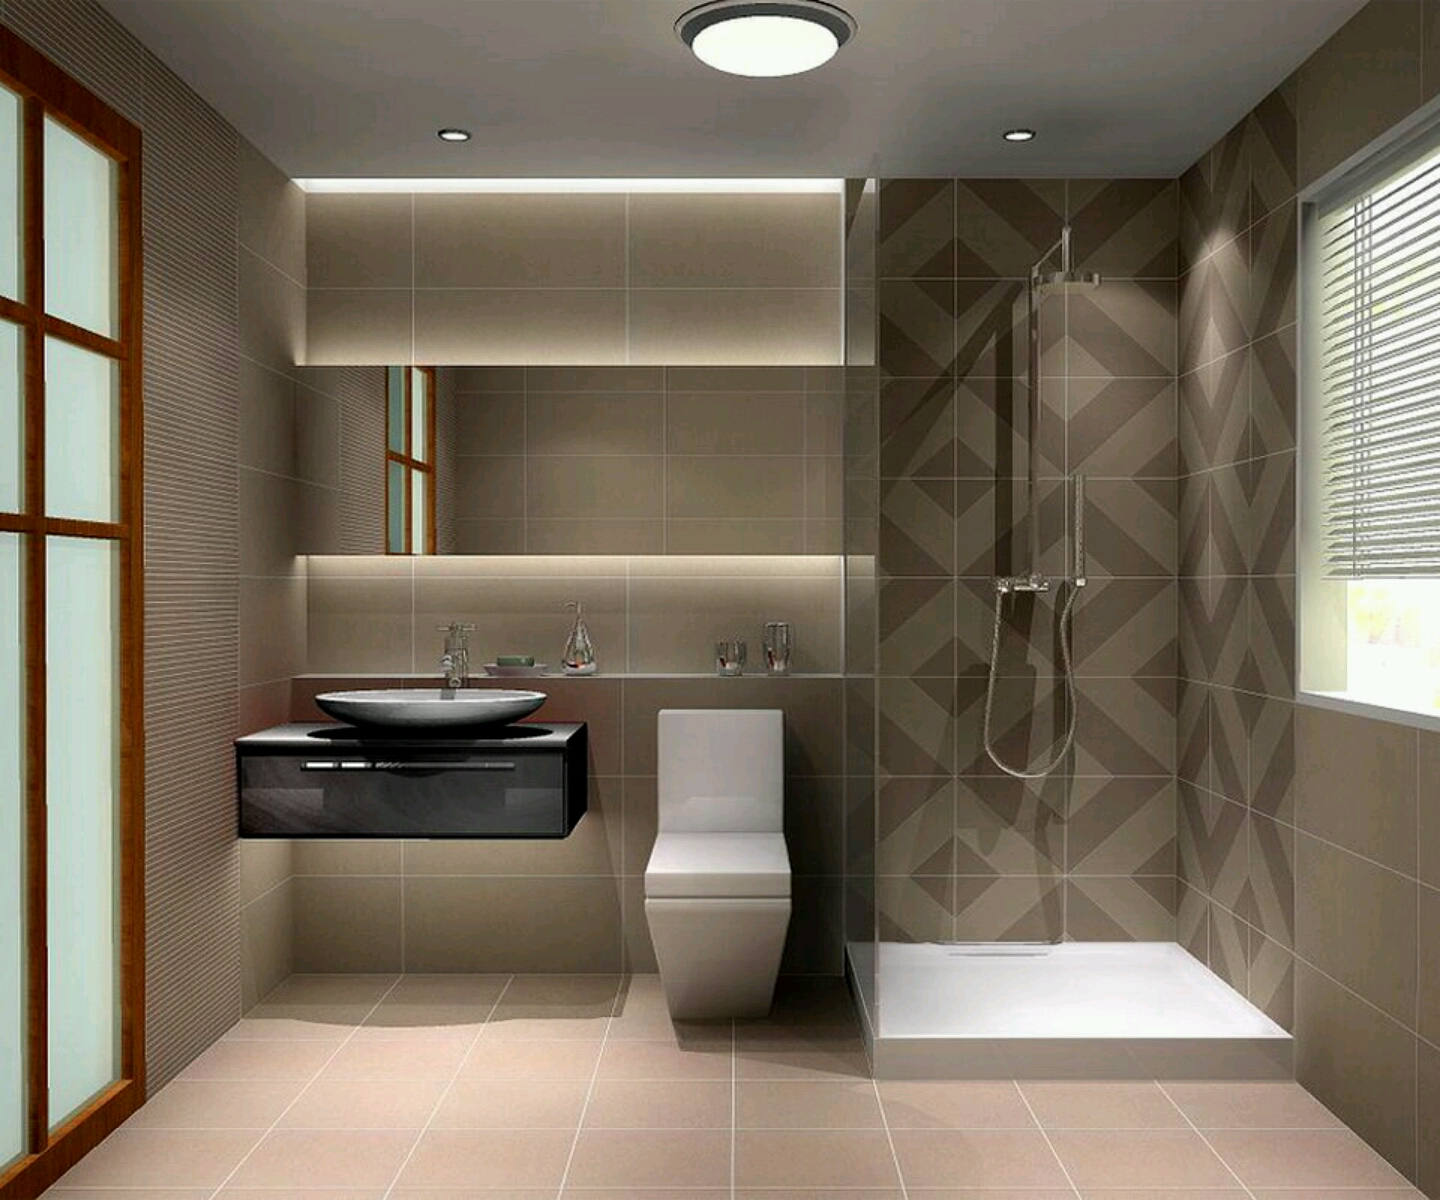 Bathroom Design Ideas: Modern Bathrooms Designs Pictures.